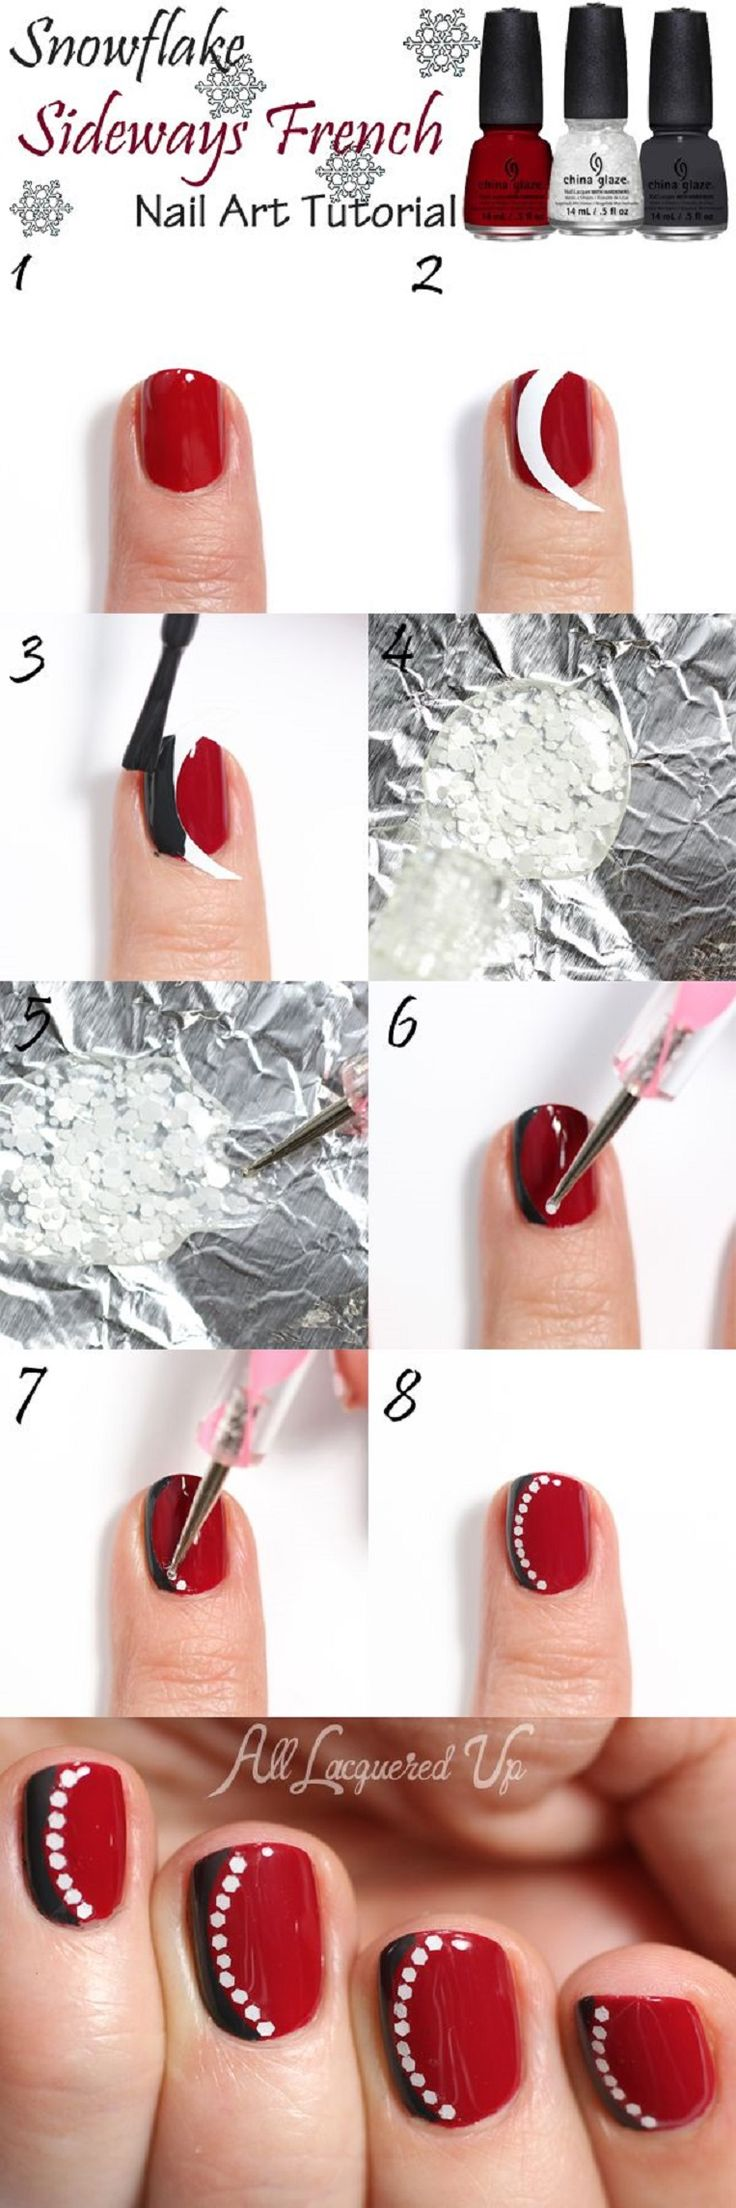 #Snowflake Sideways #French #Manicure #Nail #Art #Tutorial - 13 Wintery #DIY Nail Art Tutorials | GleamItUp